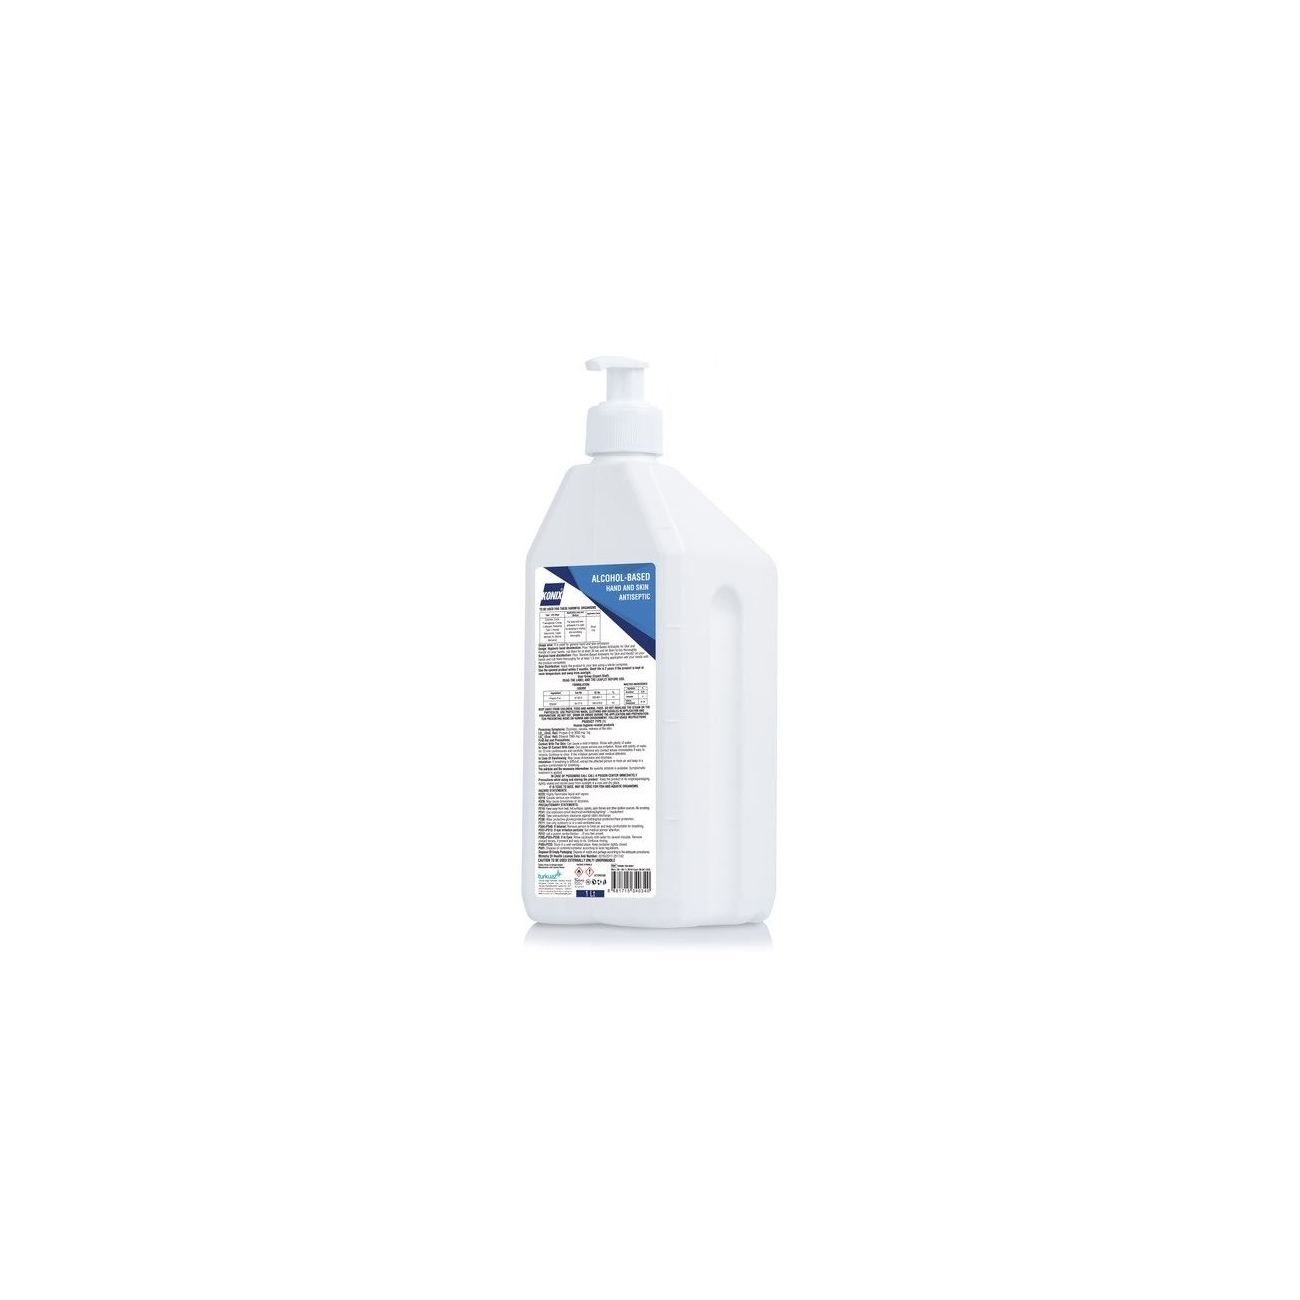 Konix Antibacteriële liquid 1000ml 70% alcohol incl. pomp-1